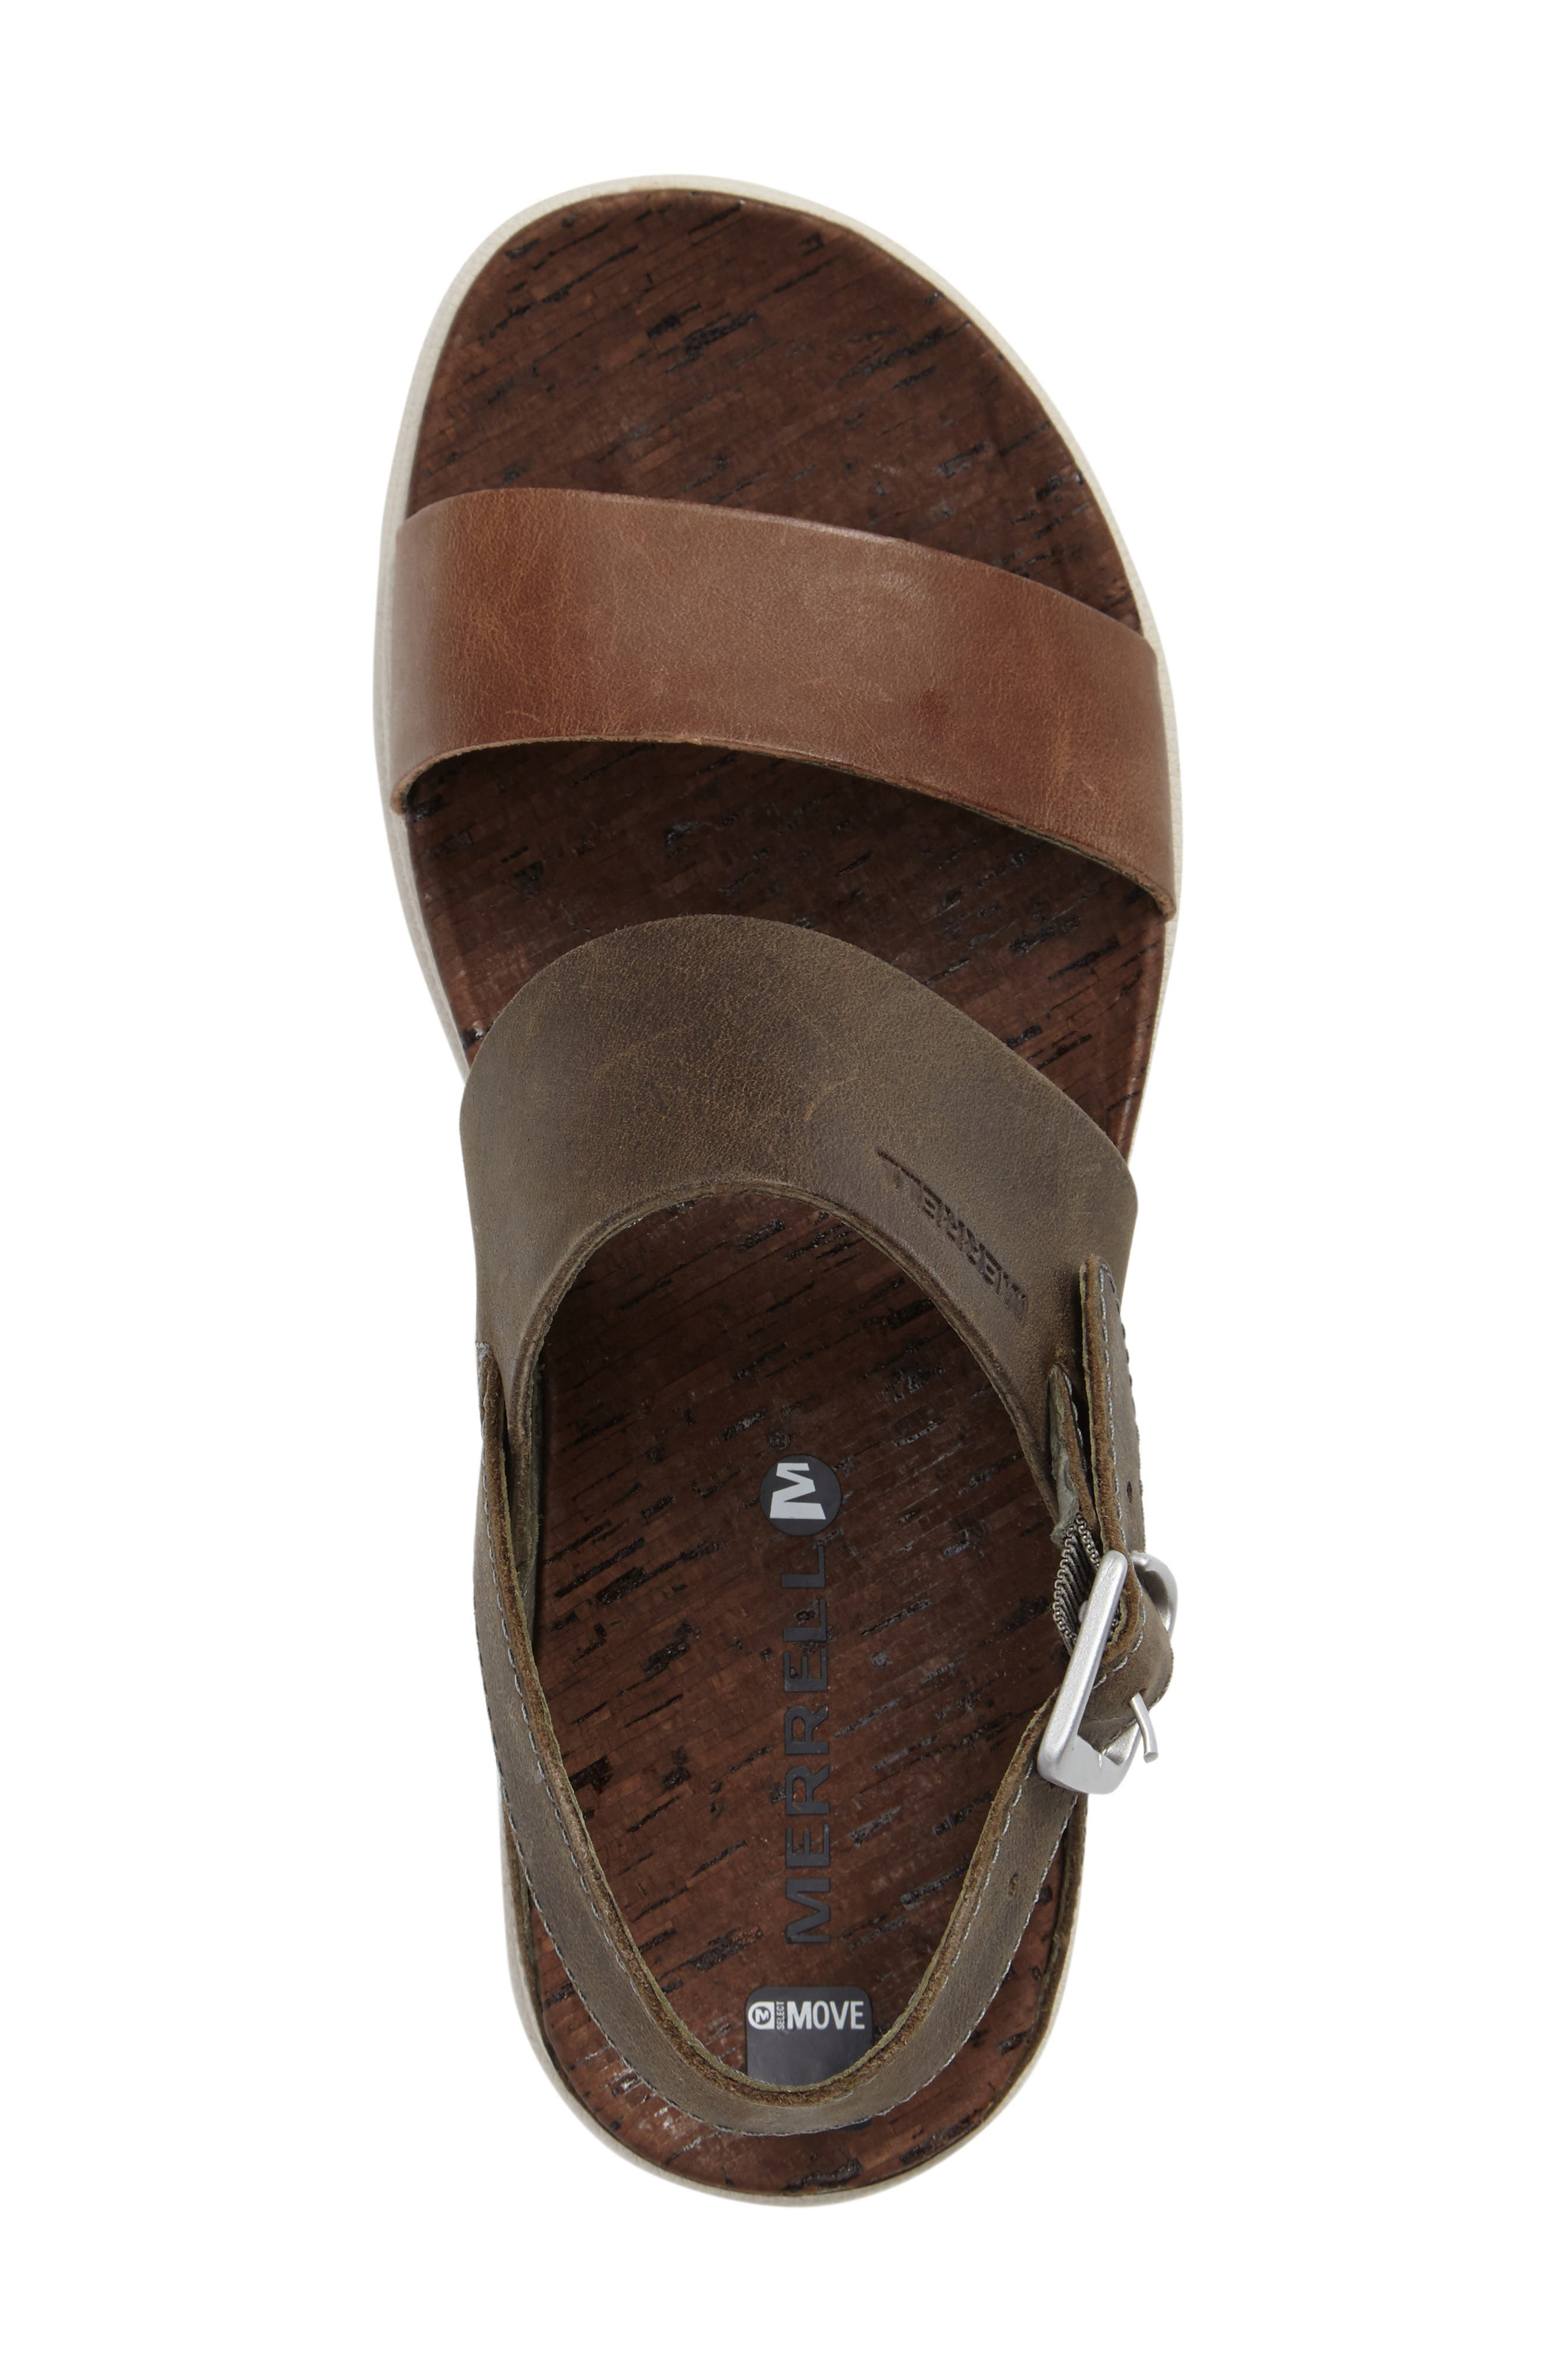 'Around Town' Slingback Sandal,                             Alternate thumbnail 3, color,                             Vertiver Leather